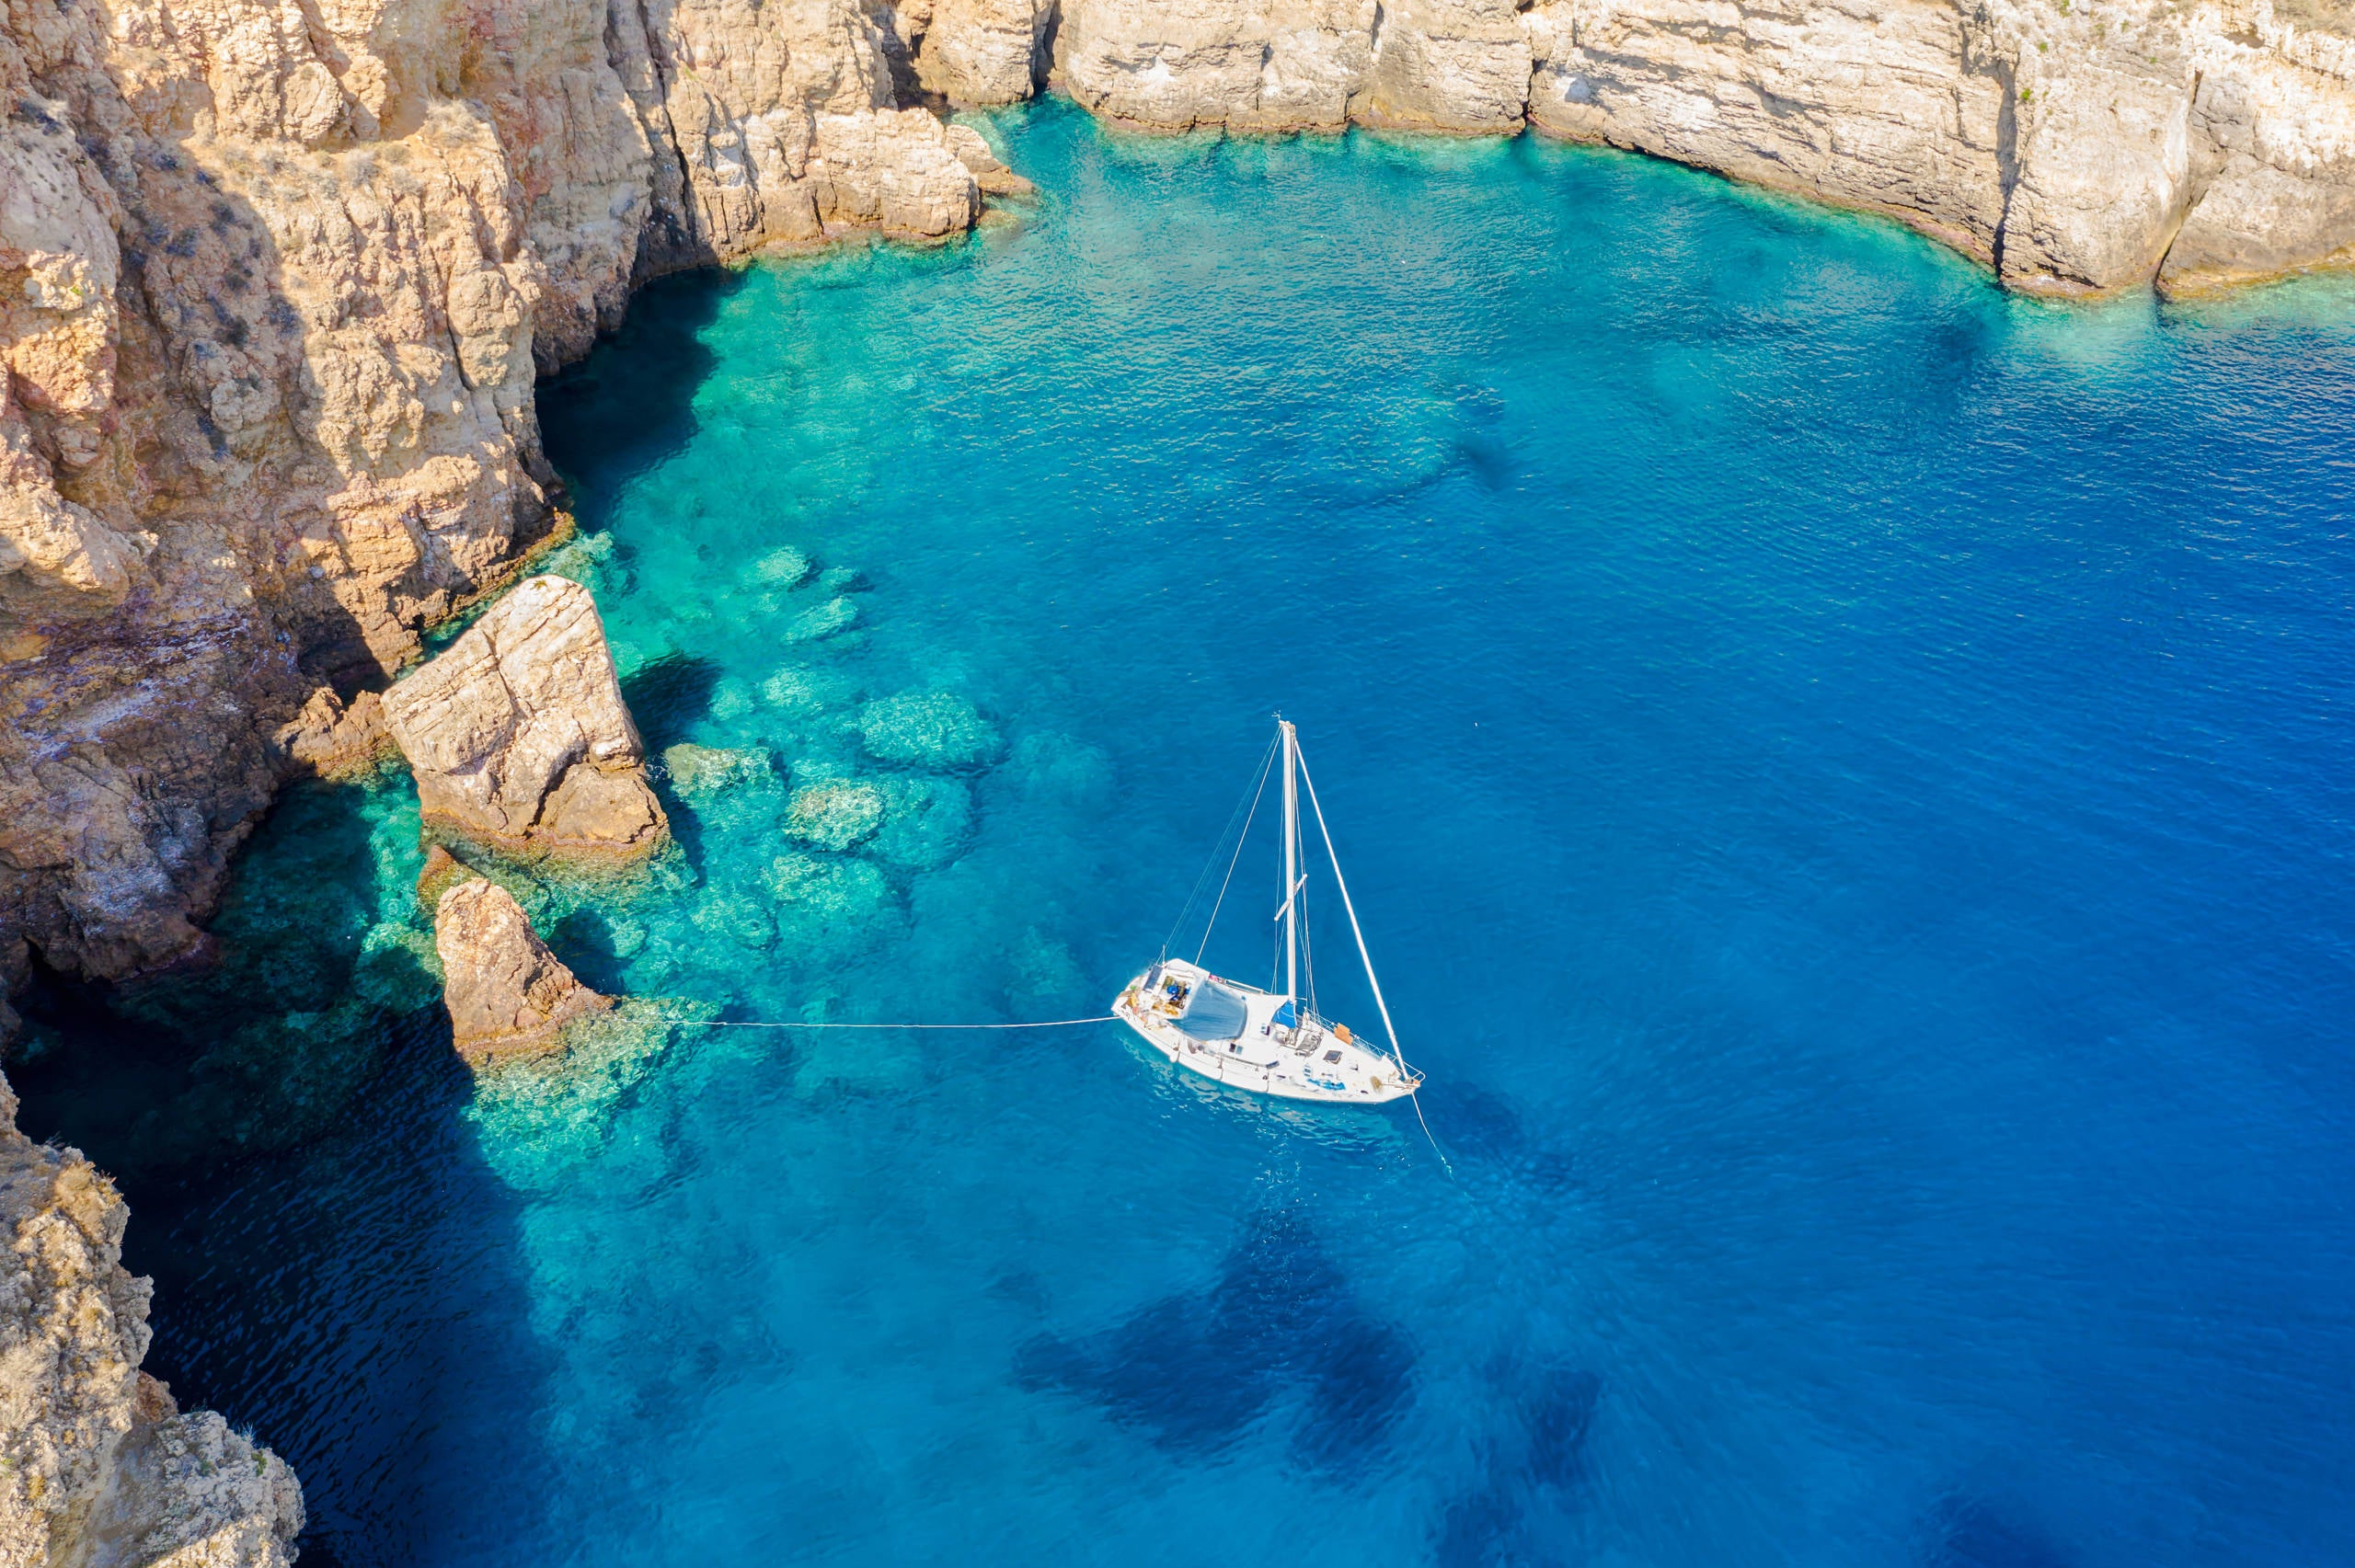 Greece is reopening: Here's how I'm rescheduling my trip on points and miles - The Points Guy